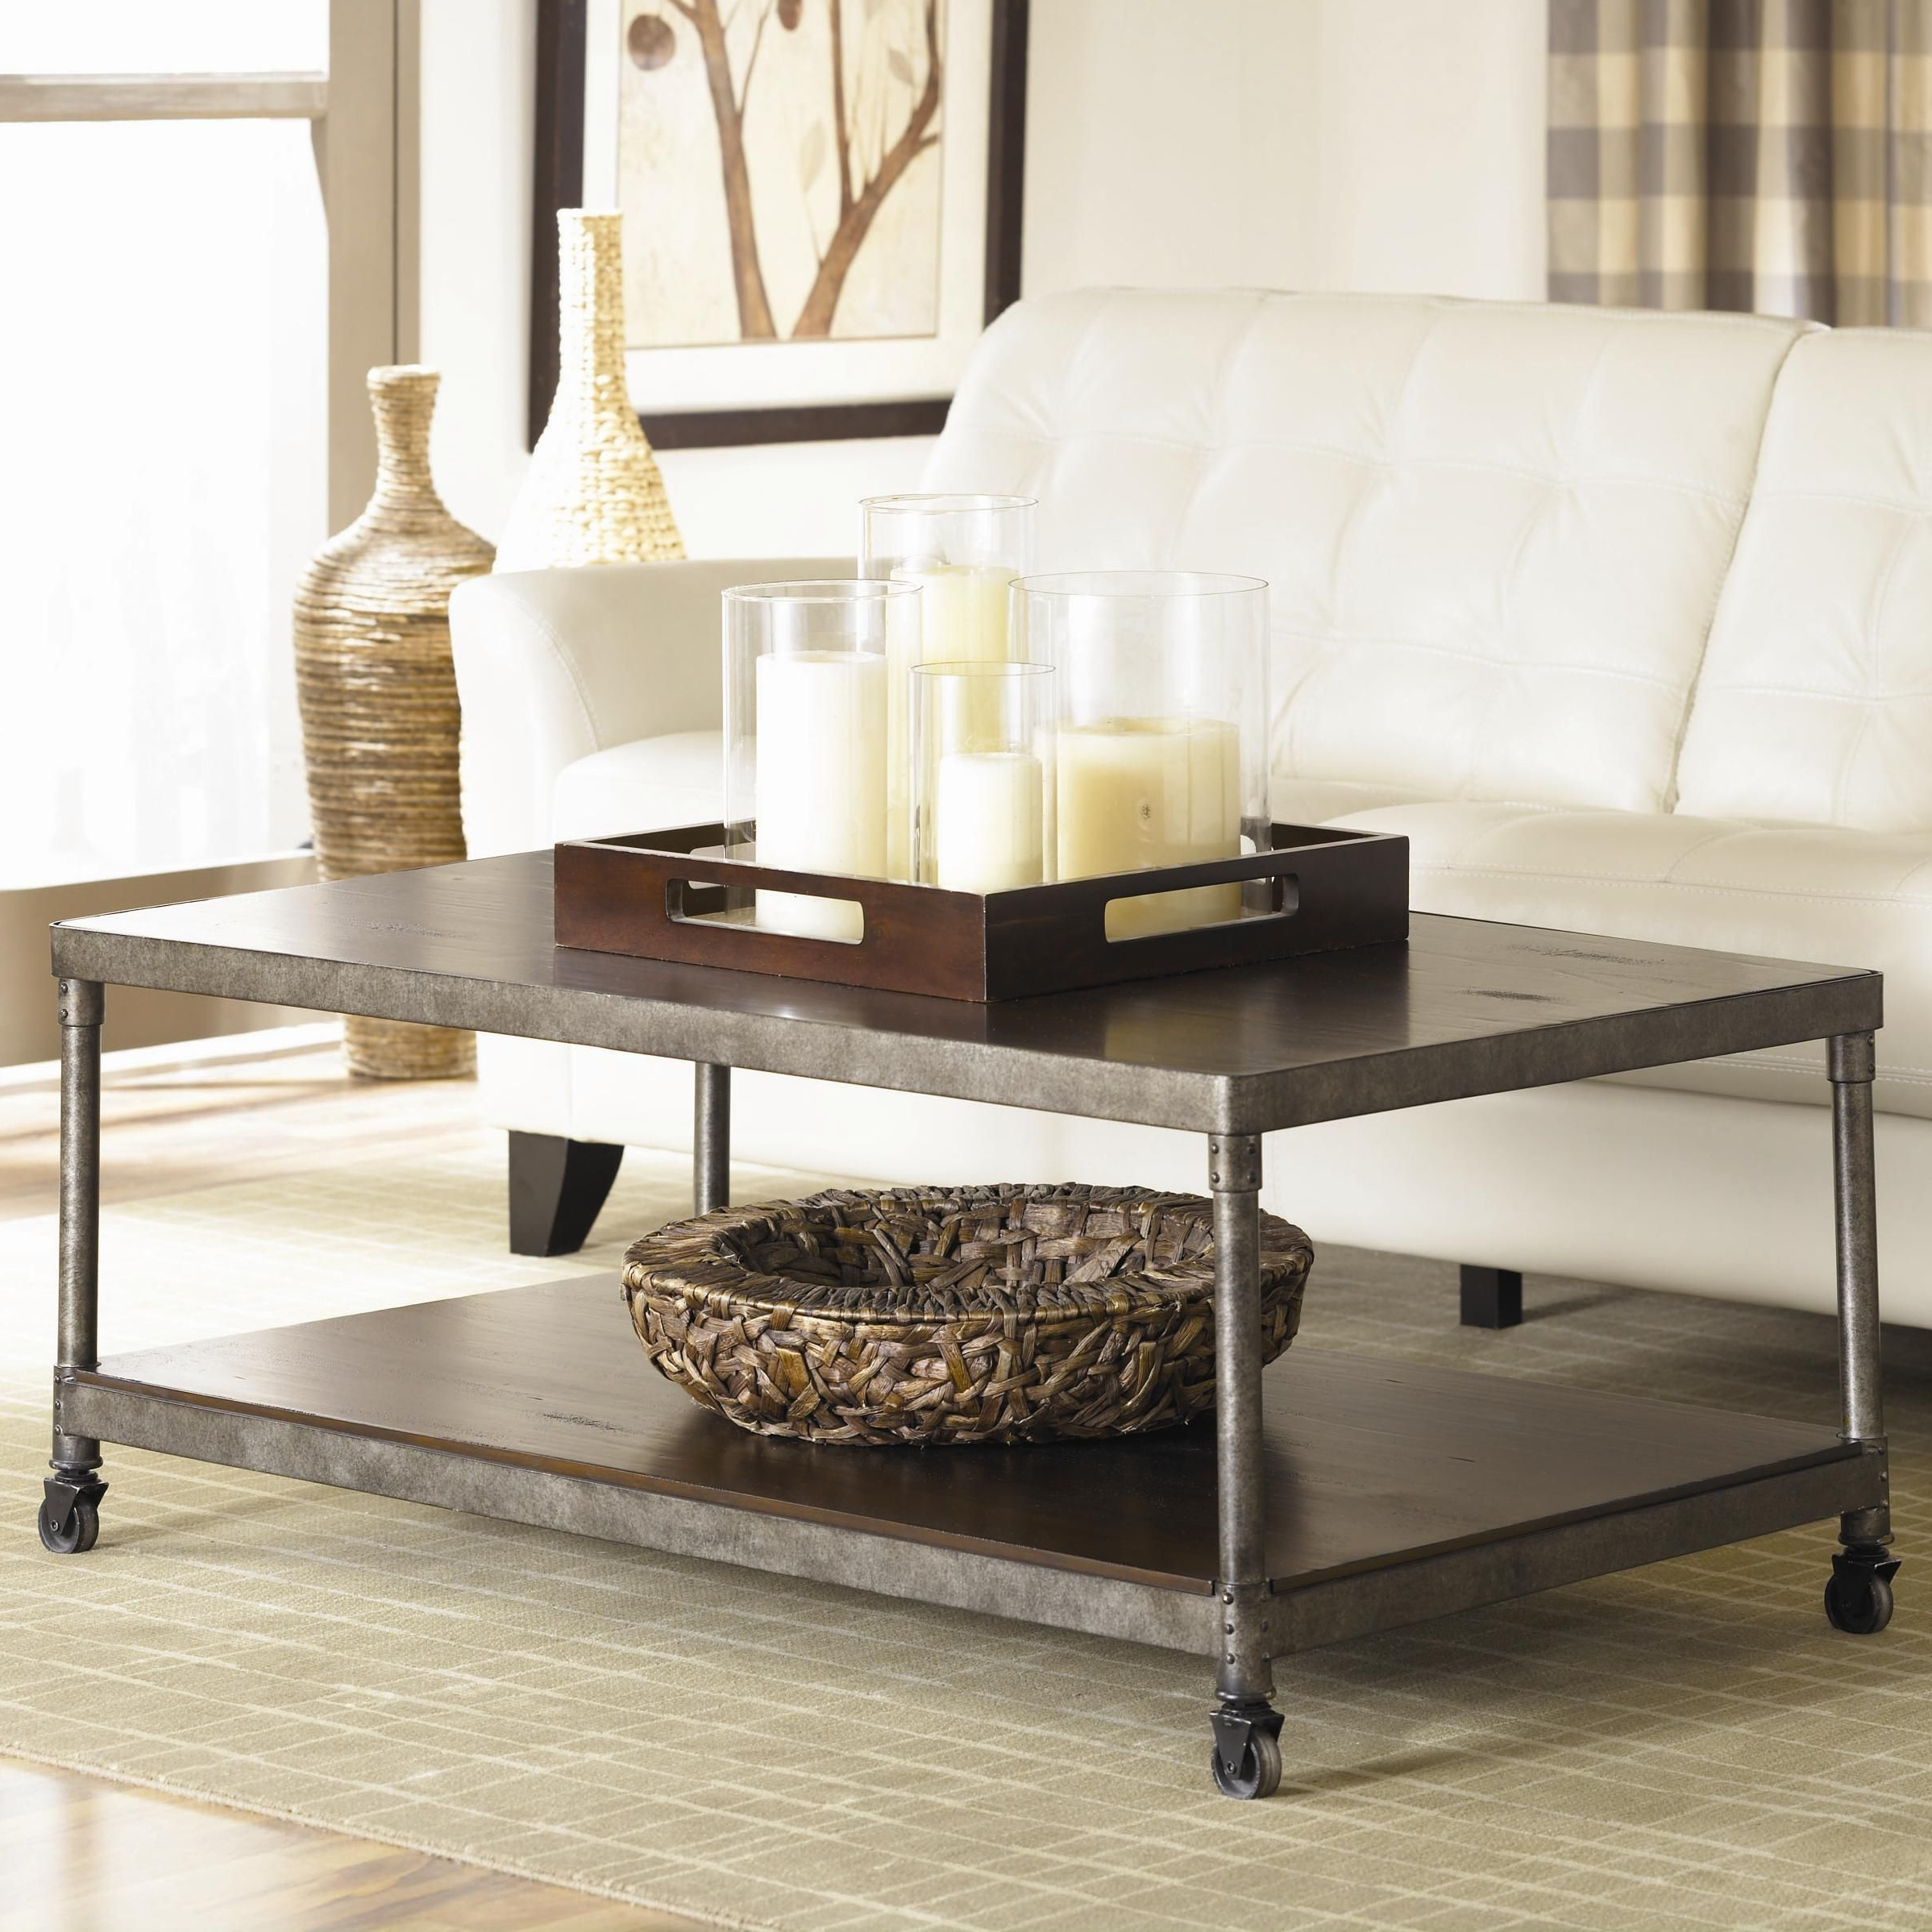 Recent Structure Metal Coffee Table W/ Lower Shelfhammary – Stoney With Ontario Cocktail Tables With Casters (View 14 of 20)